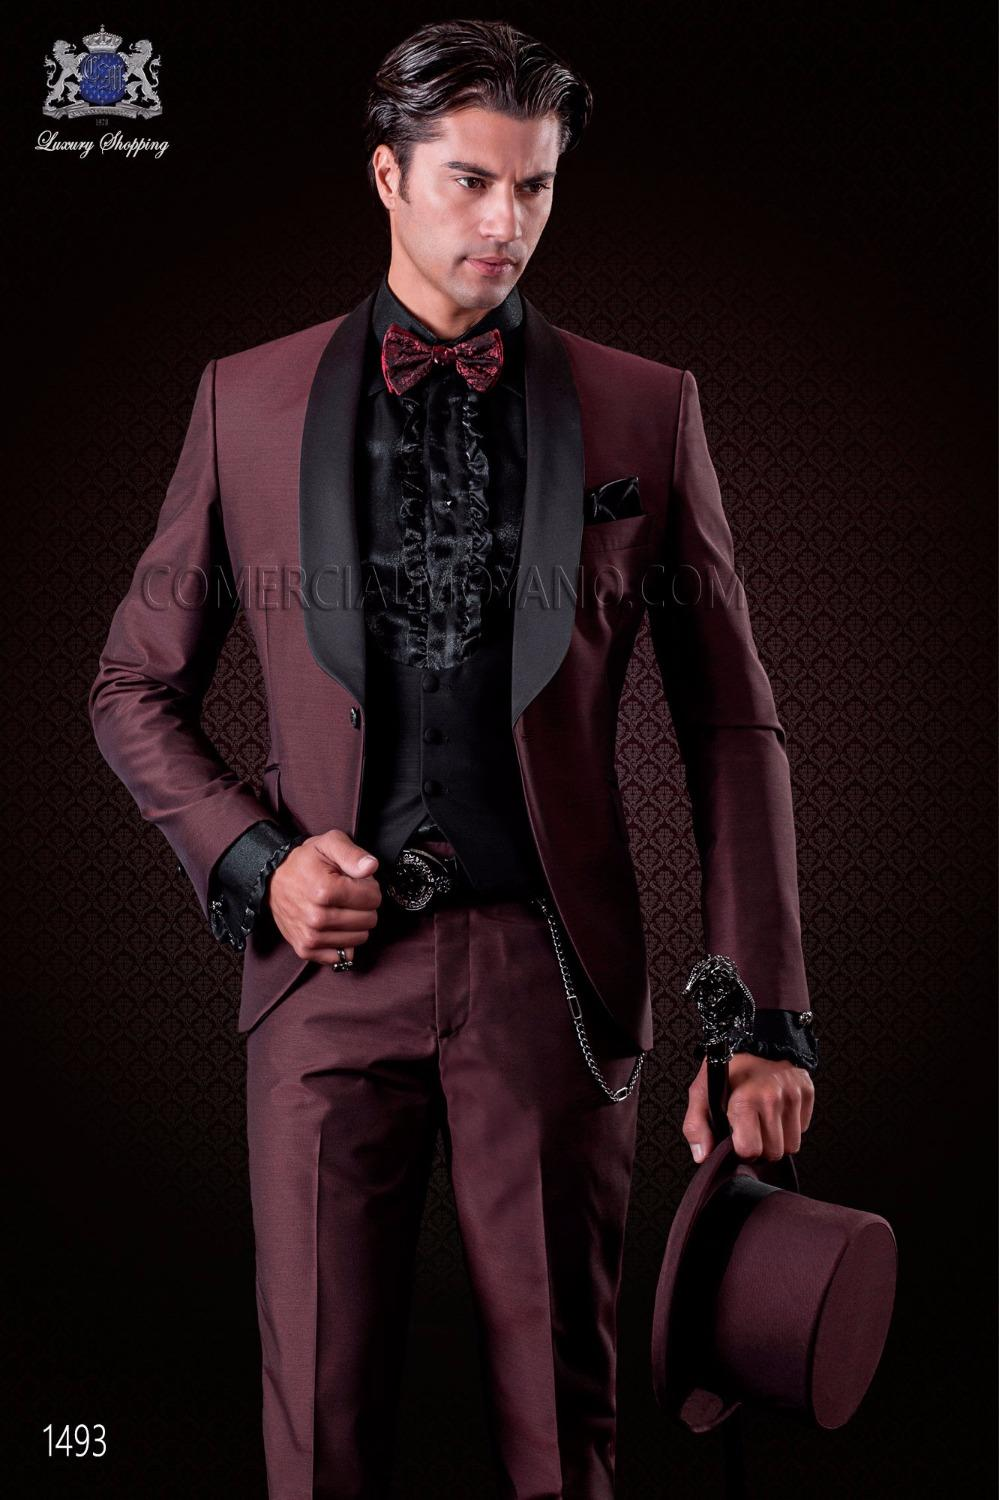 2019 Wholesale Latest Coat Pant Designs Burgundy Shawl Lapel Men Suit Slim  Fit Italian Tuxedo Custom Stylish Suit Terno Masculino From Blueberry13 2aafcf2a19a4